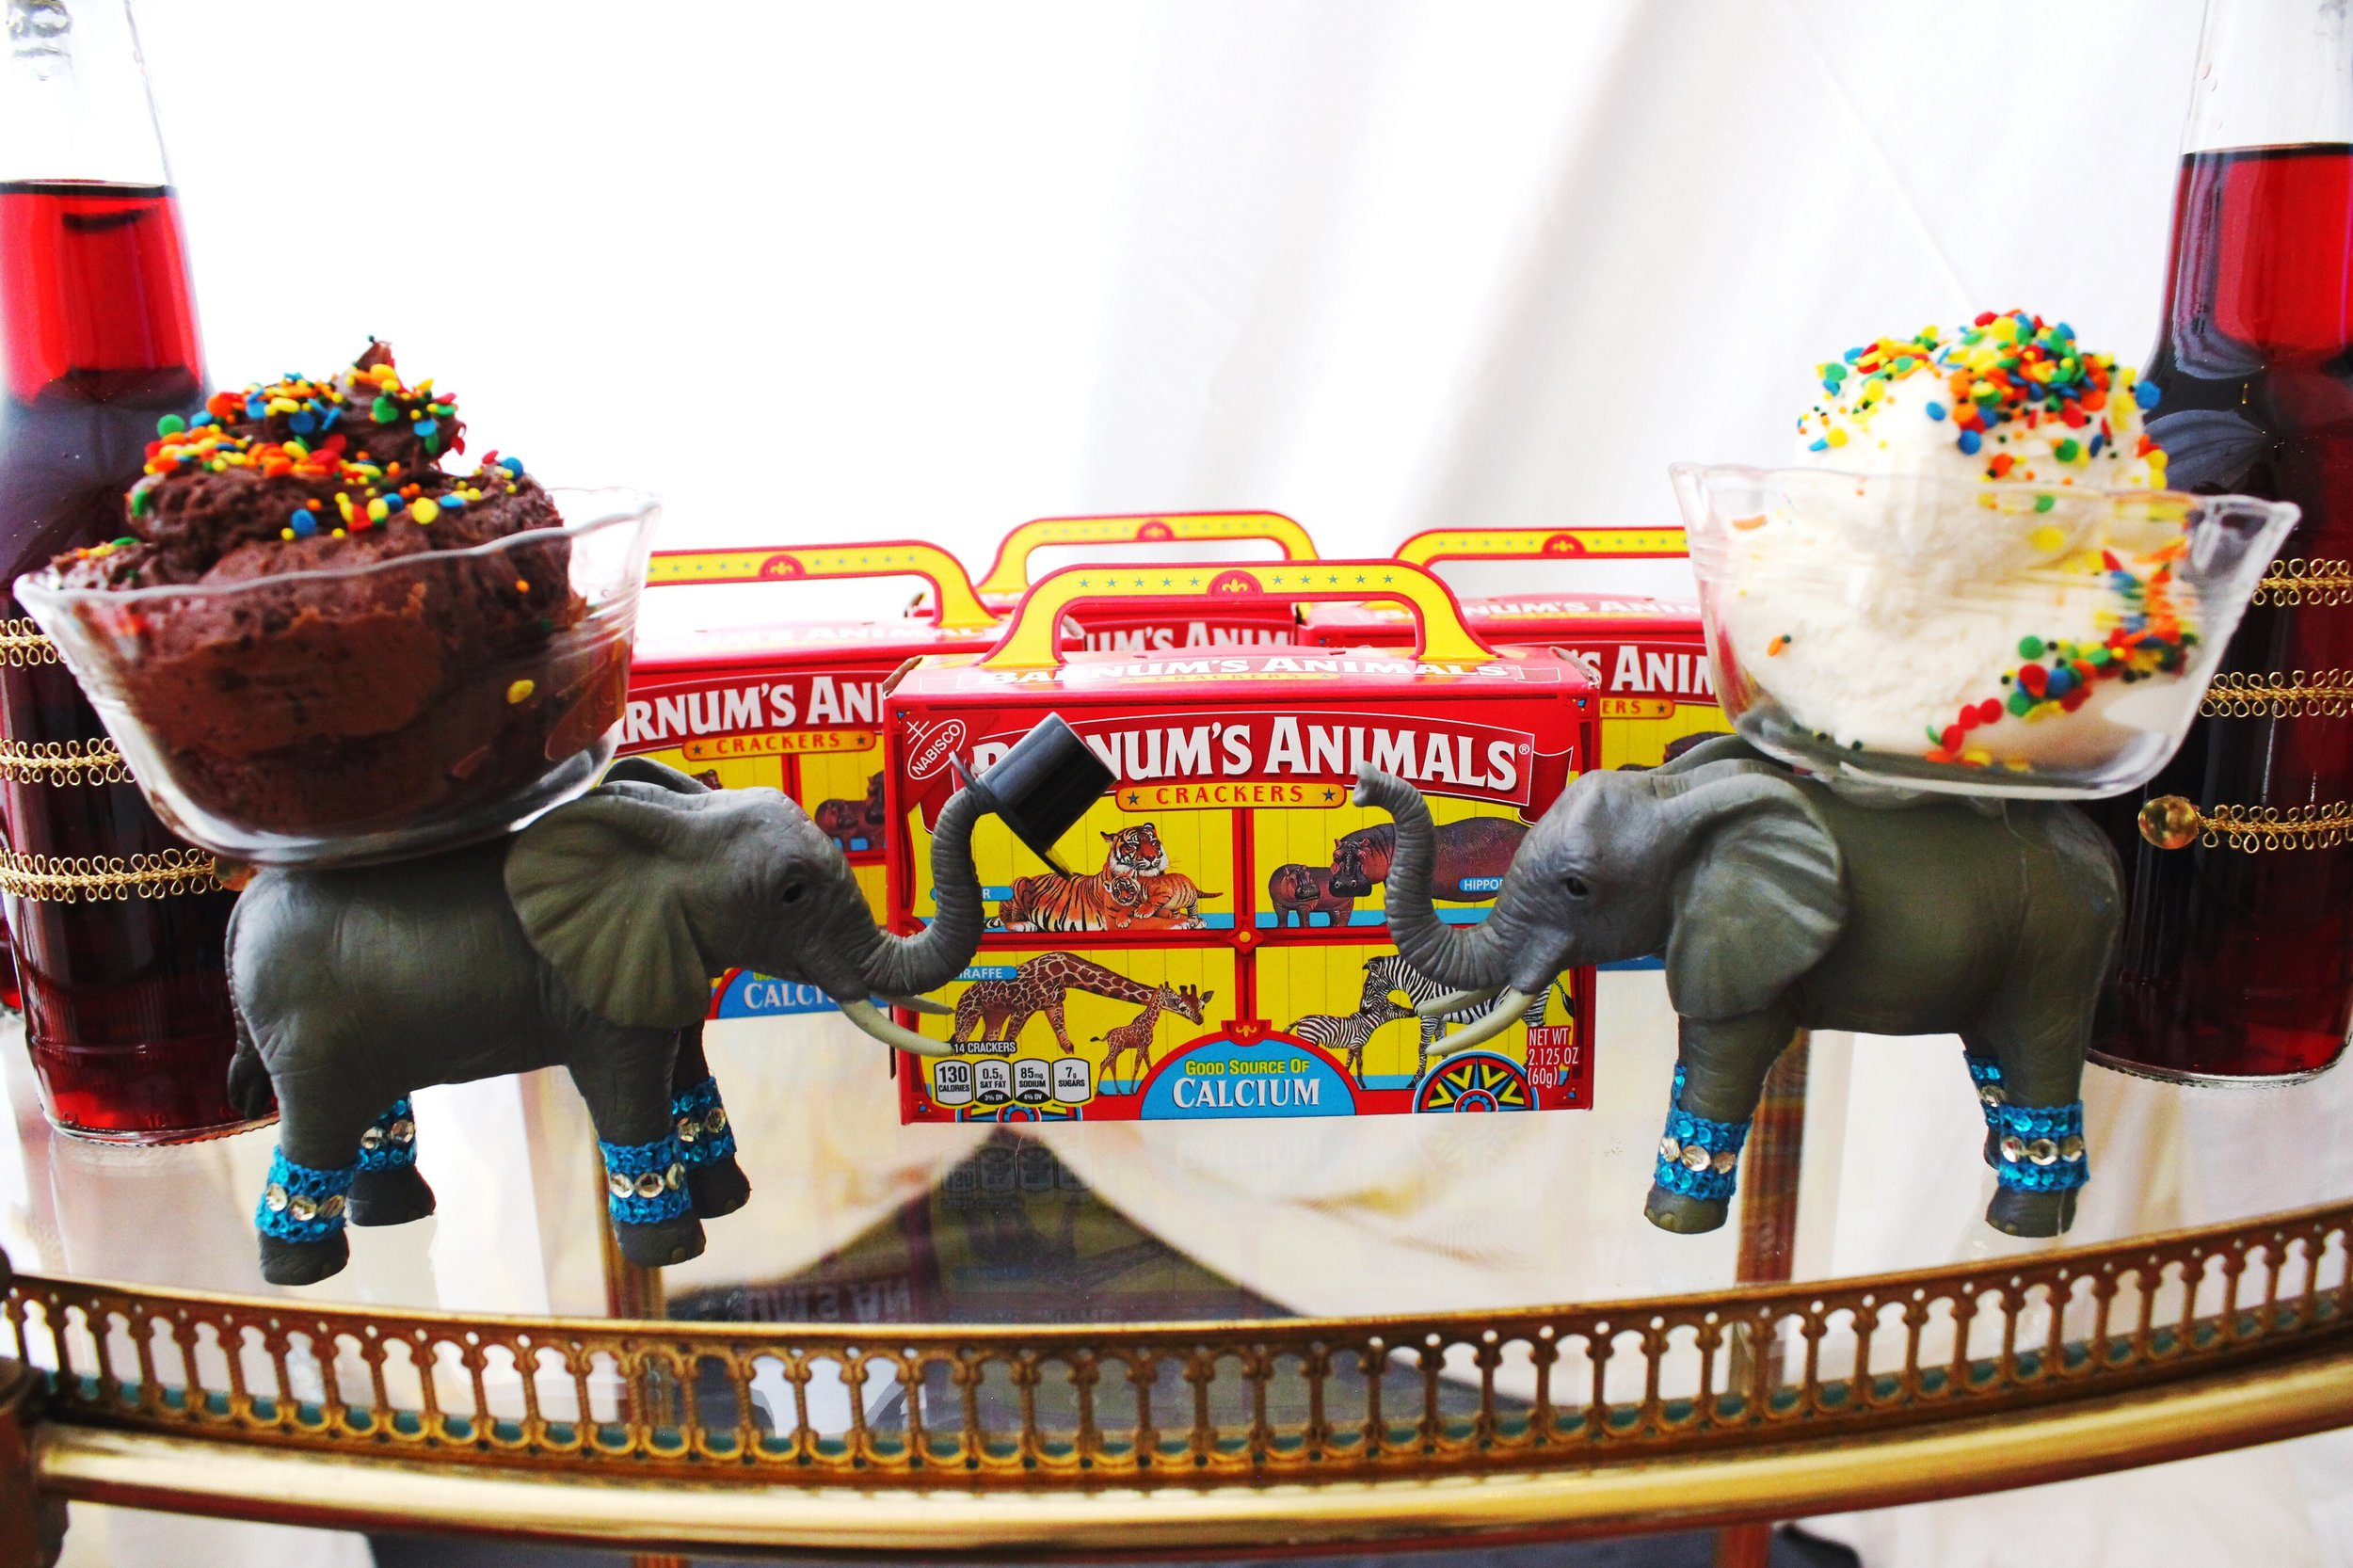 The Greatest Showman Movie Party_Circus Elephants_Barnum Animal Crackers_Frosting.JPG